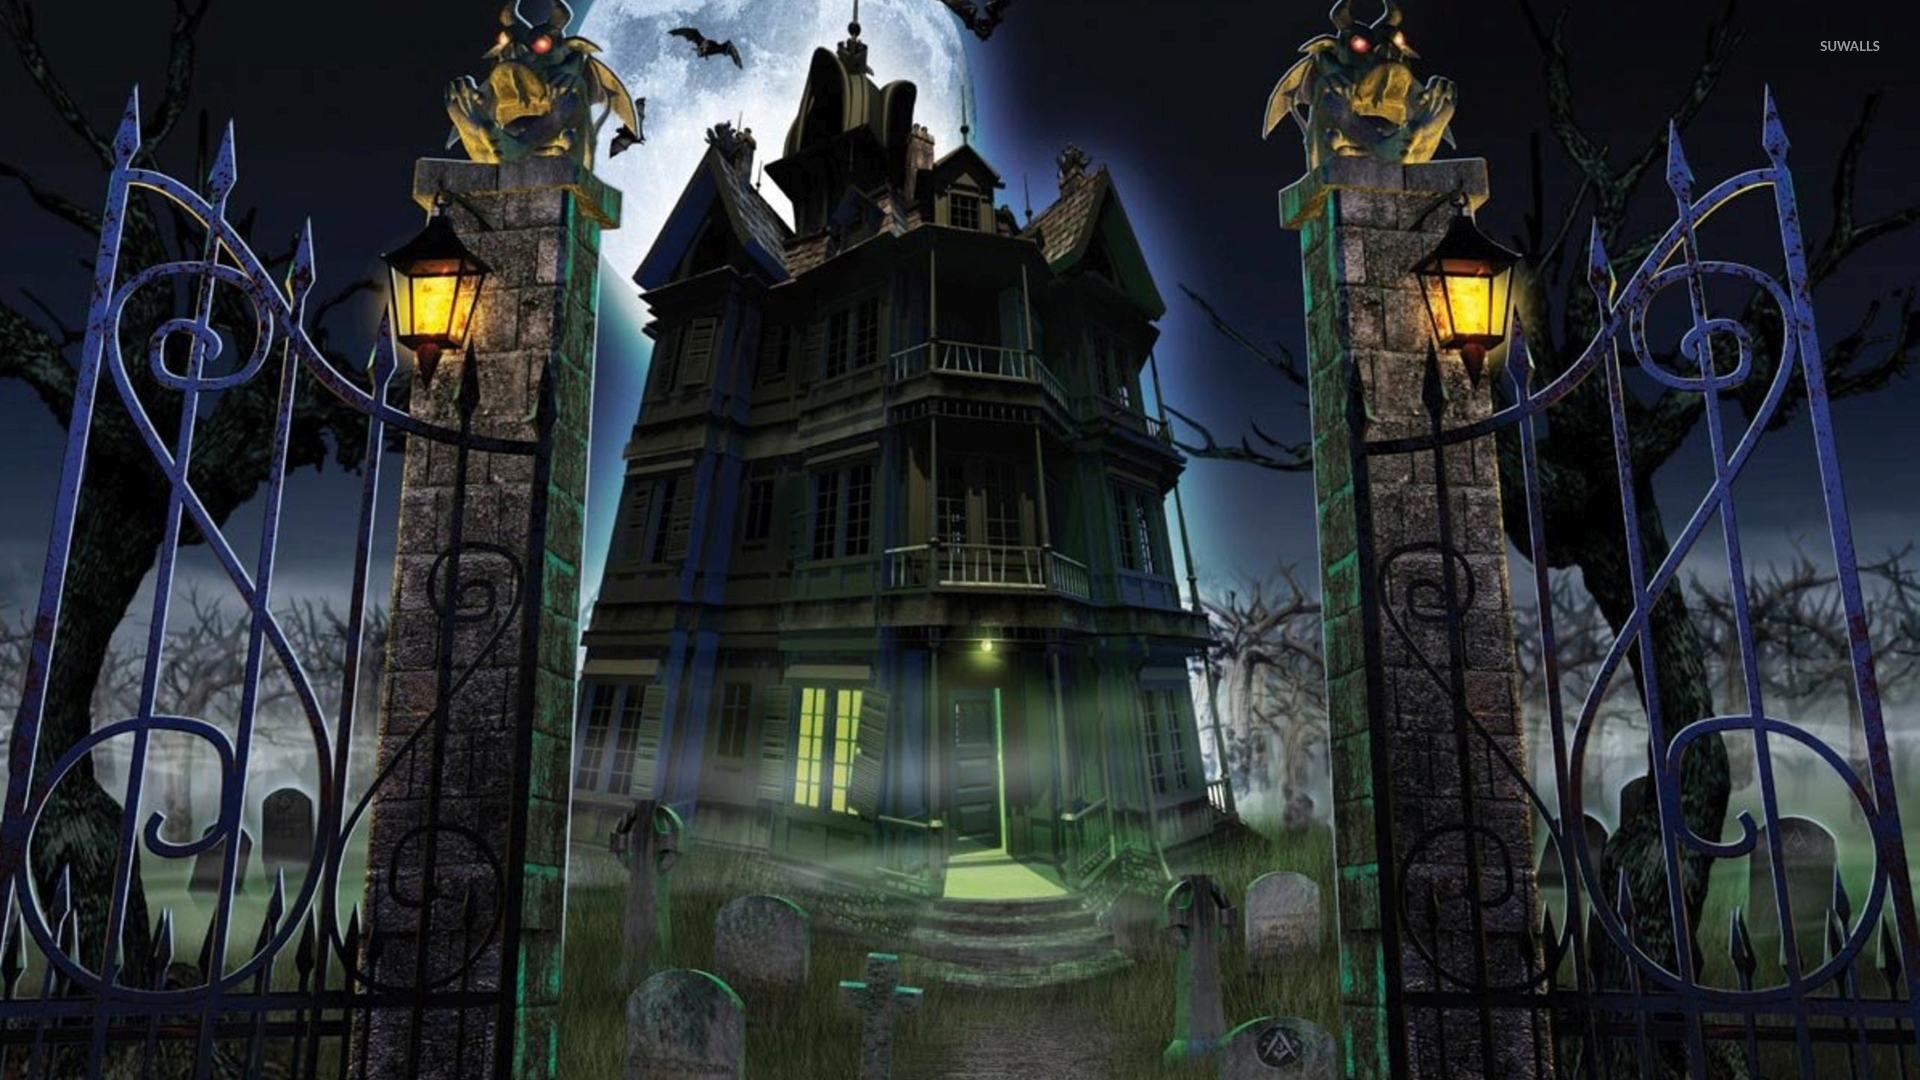 haunted mansion Take a sneak peak at the movies coming out this week (8/12) gwyneth paltrow teams with lilly pulitzer on goop line adam lambert: 'american idol focus on my sexuality was damaging.